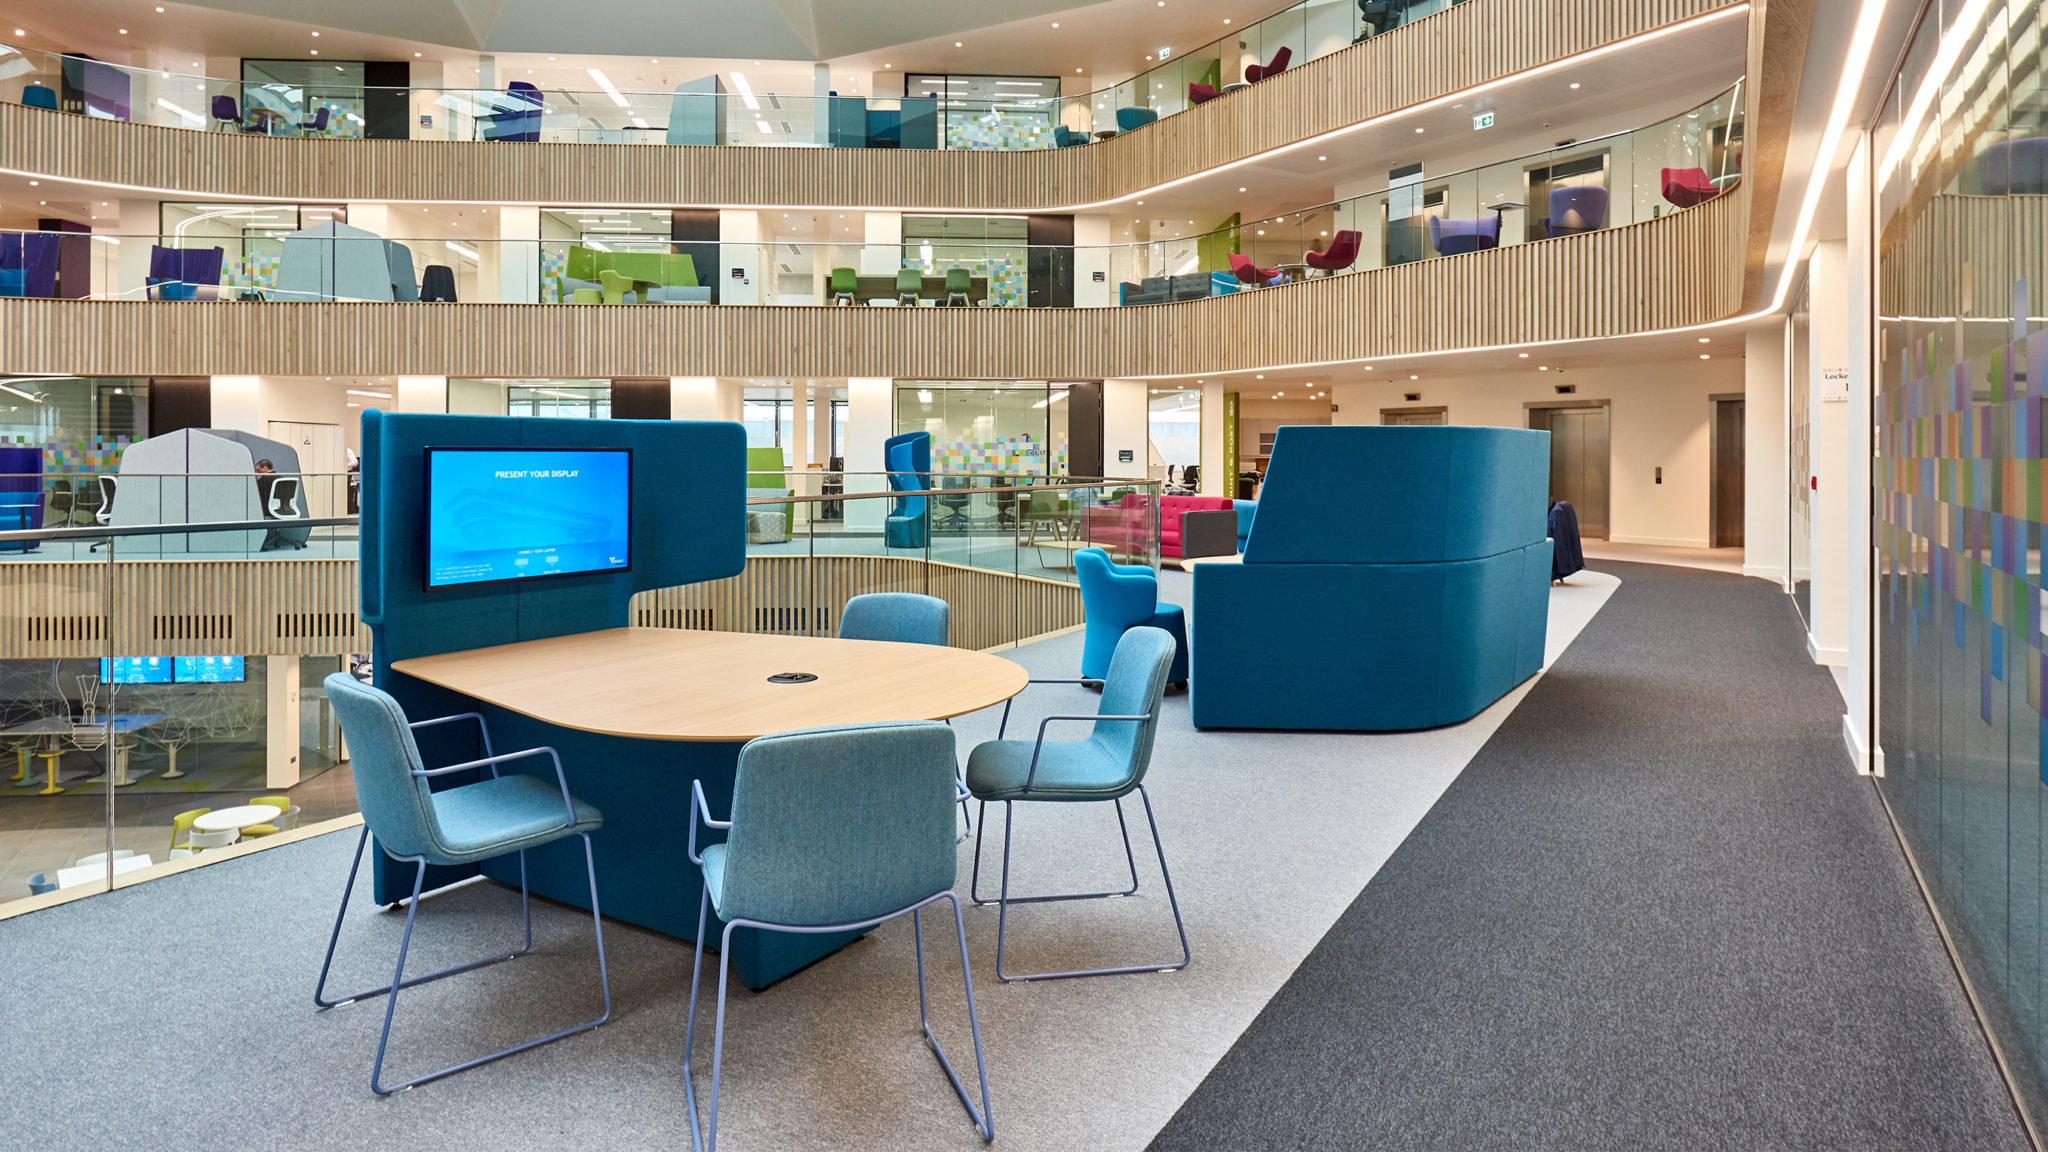 Steelcase Acquires Orangebox, UK-based Maker of Alternative Furniture